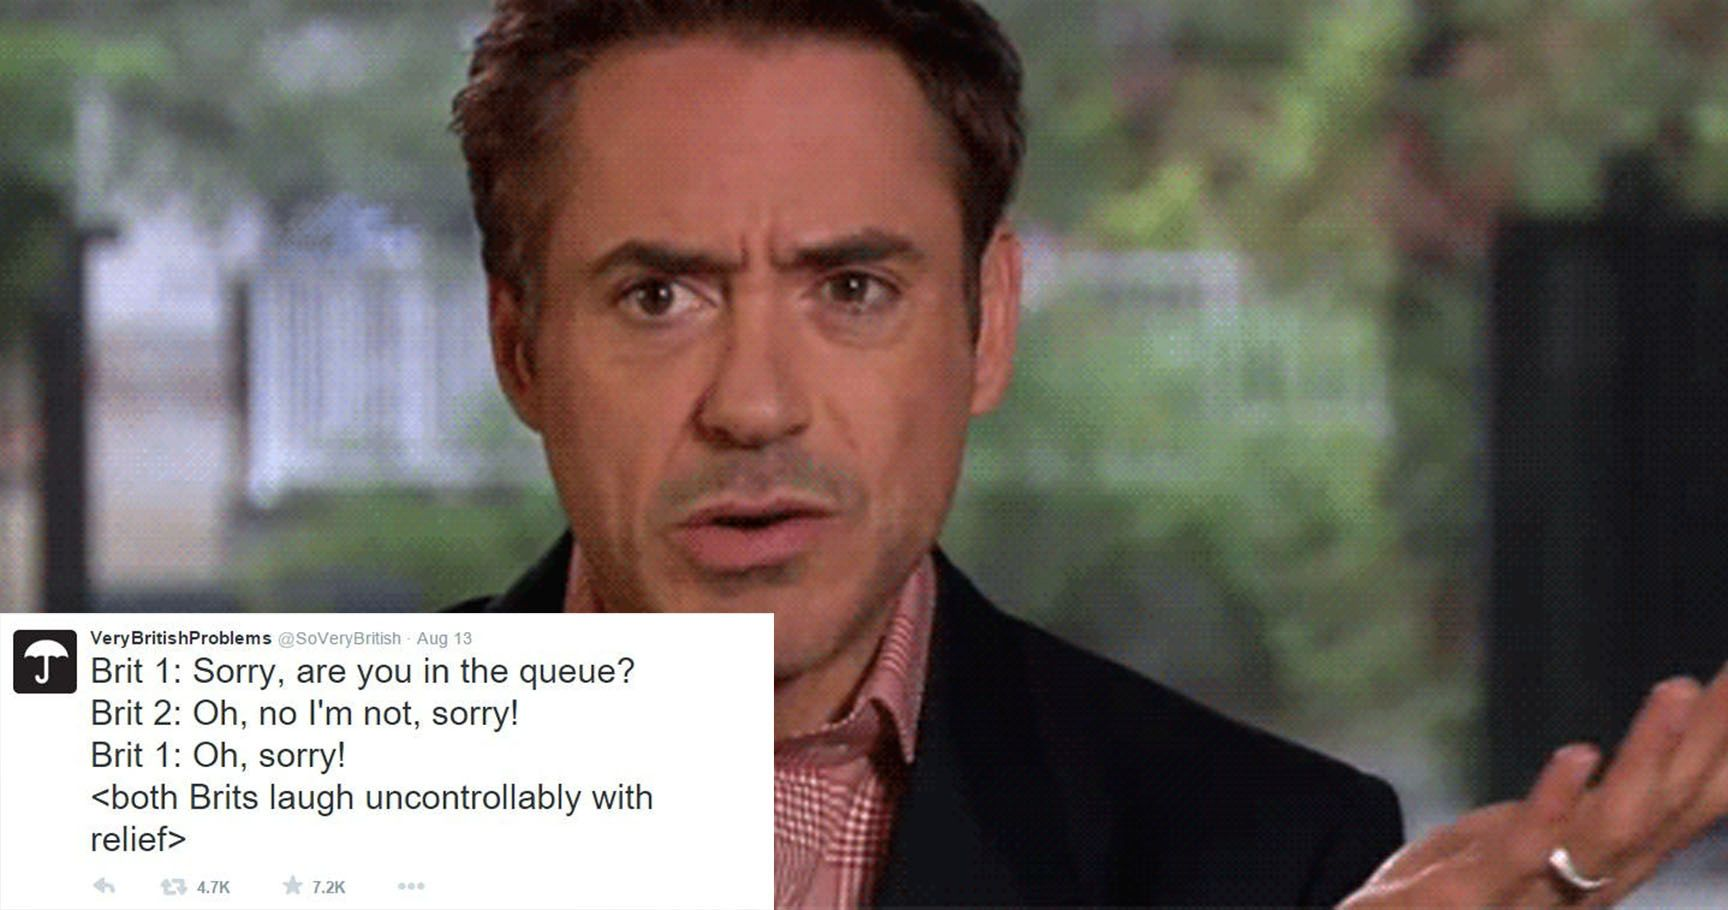 15 Hilarious British Posts That Confused The Rest Of The World